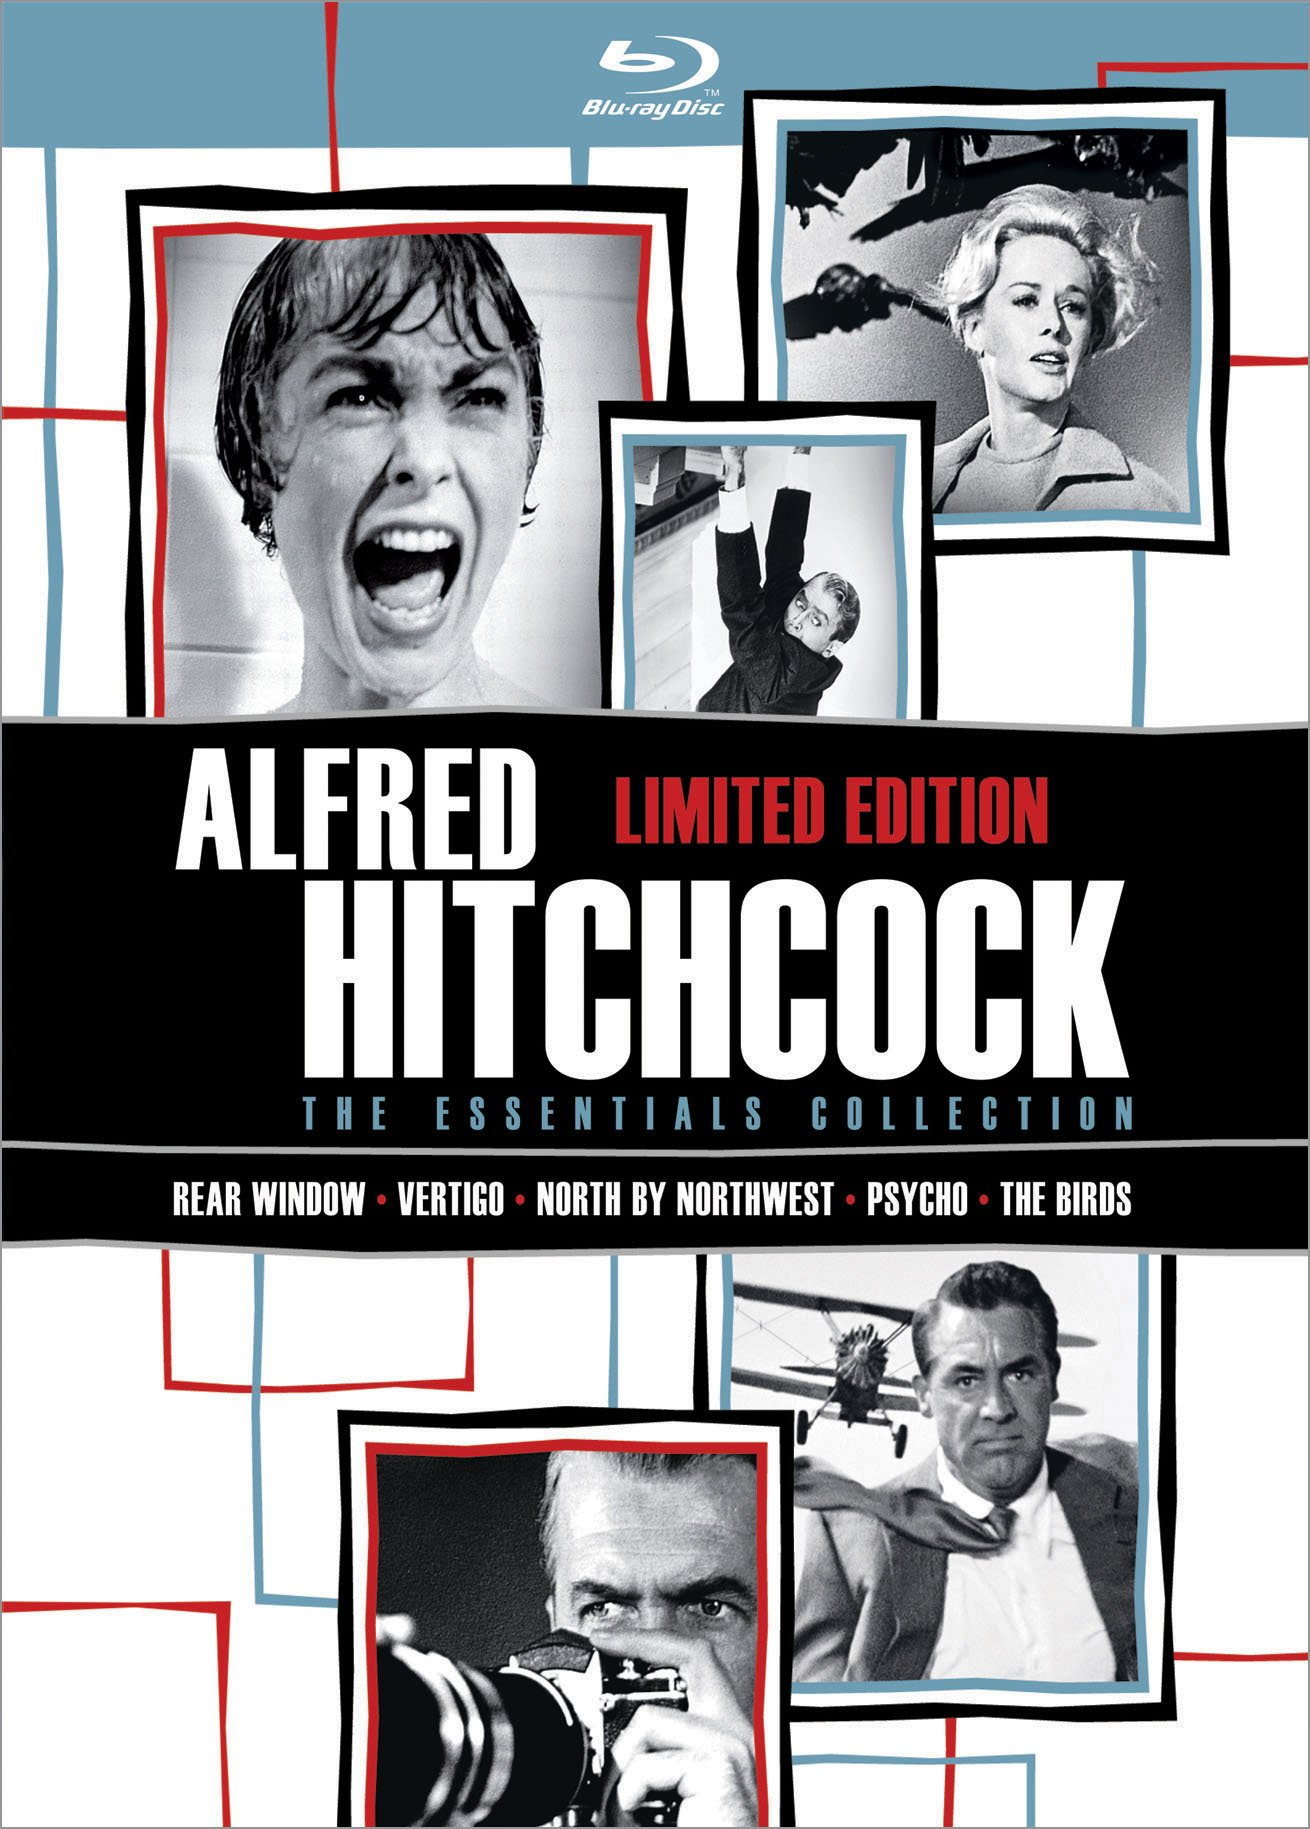 Alfred Hitchcock: The Essentials Collection [Blu-ray] by UNI DIST CORP. (MCA)